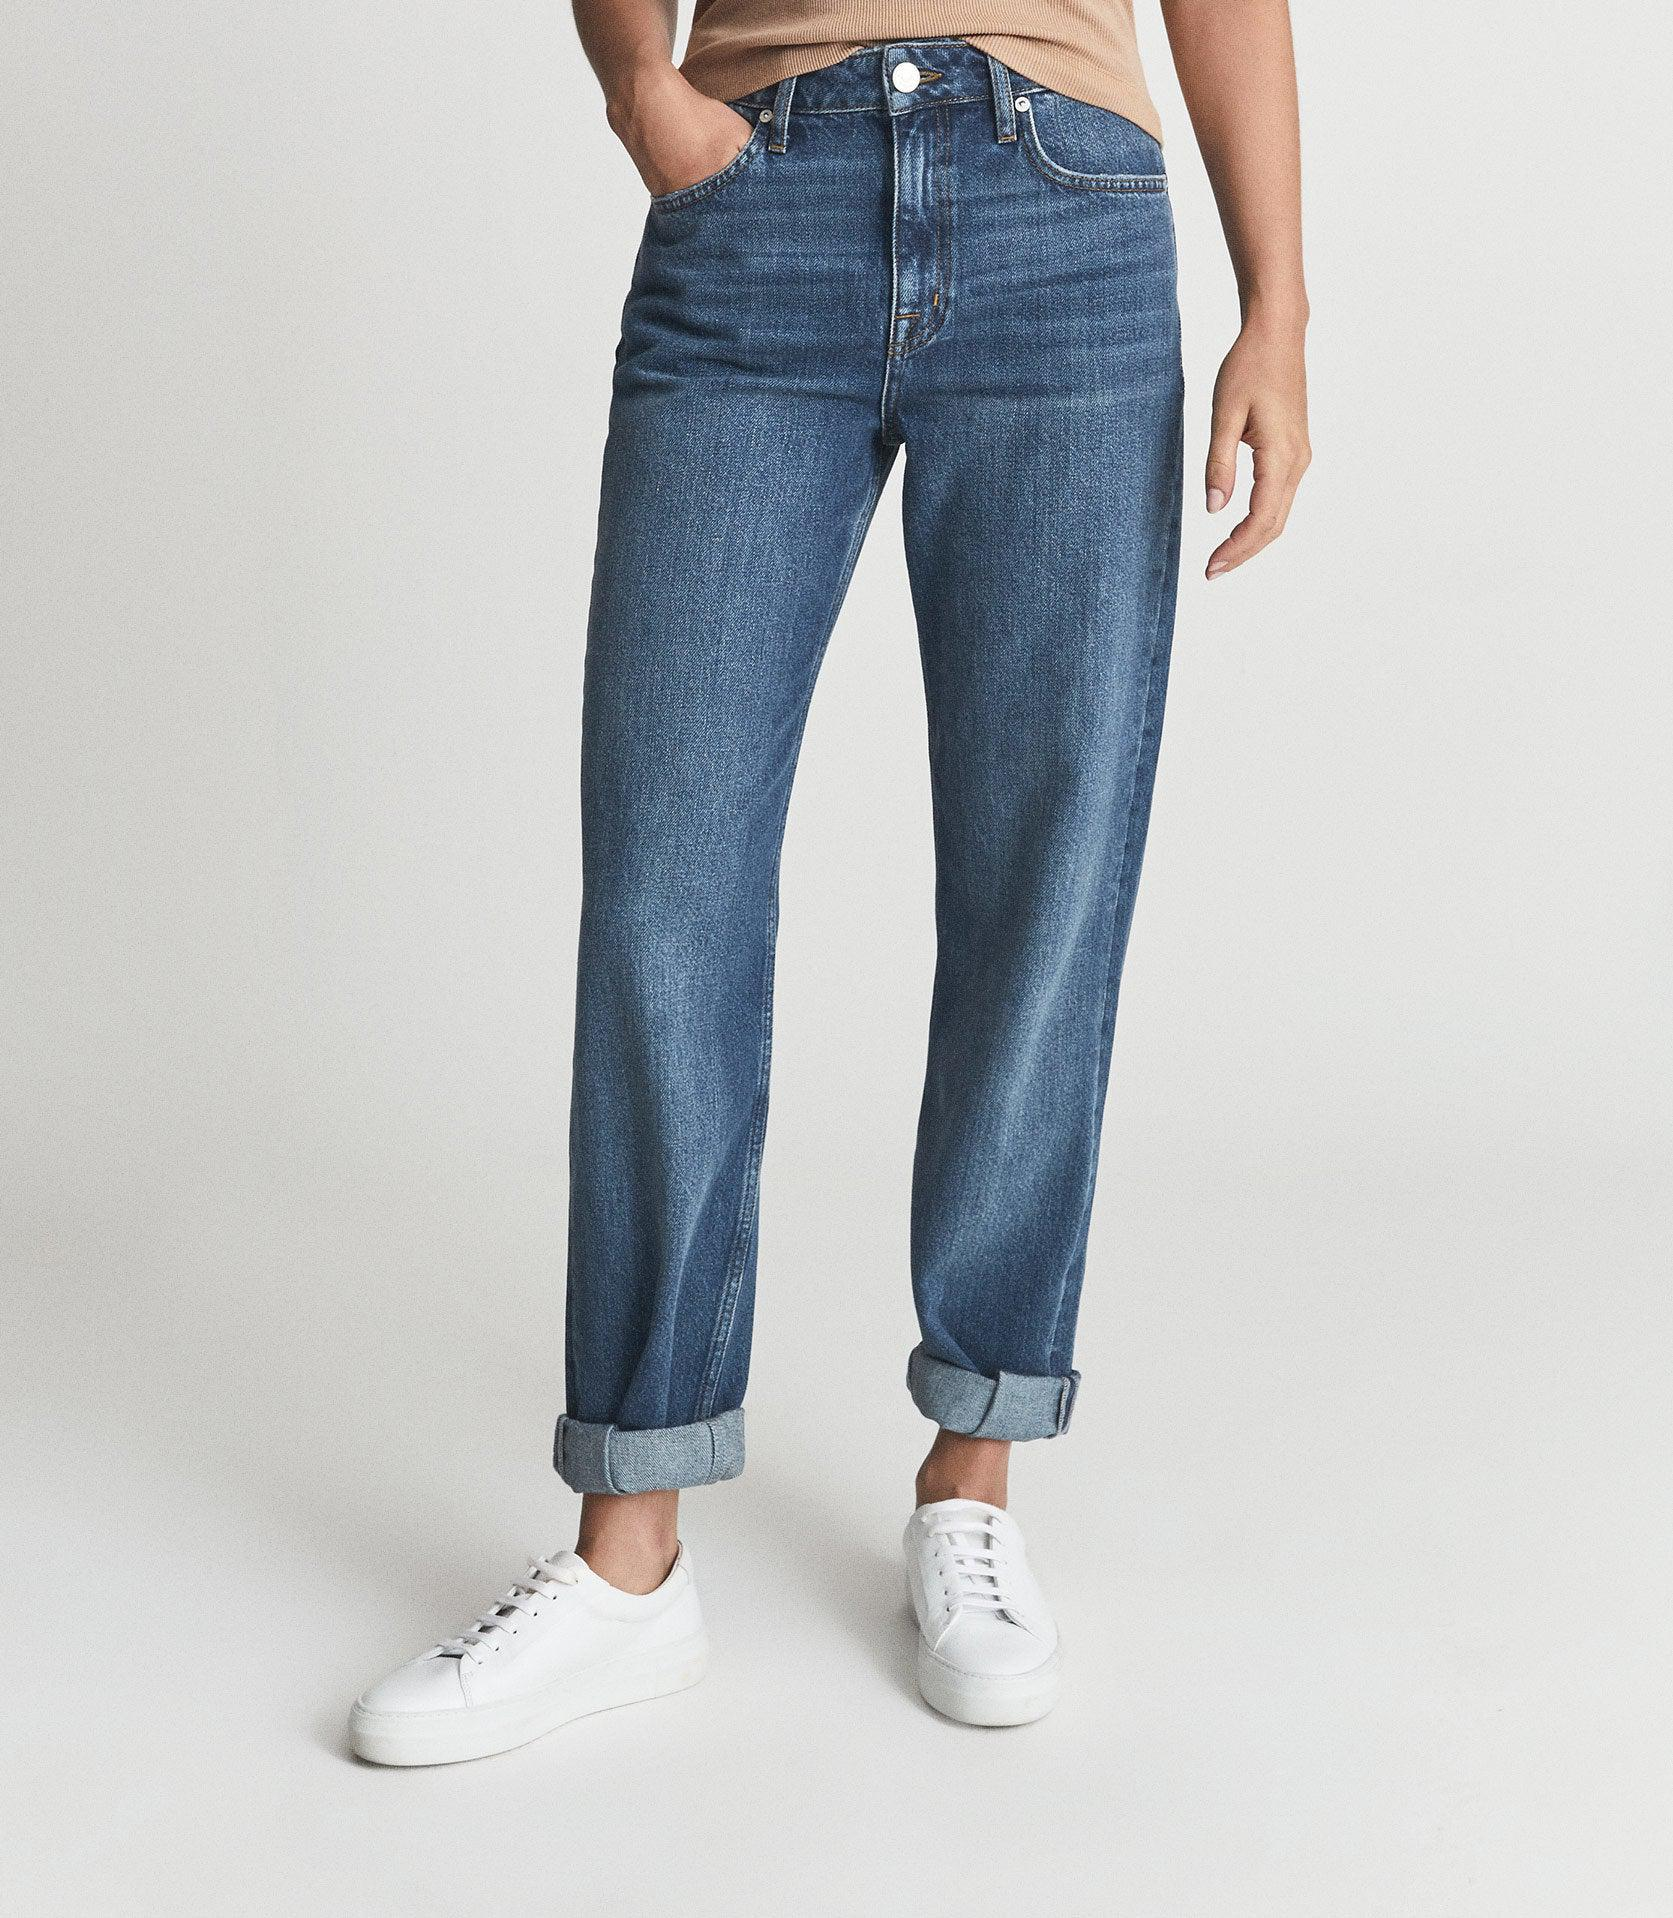 ADELE - MID RISE RELAXED WIDE LEG JEANS 1